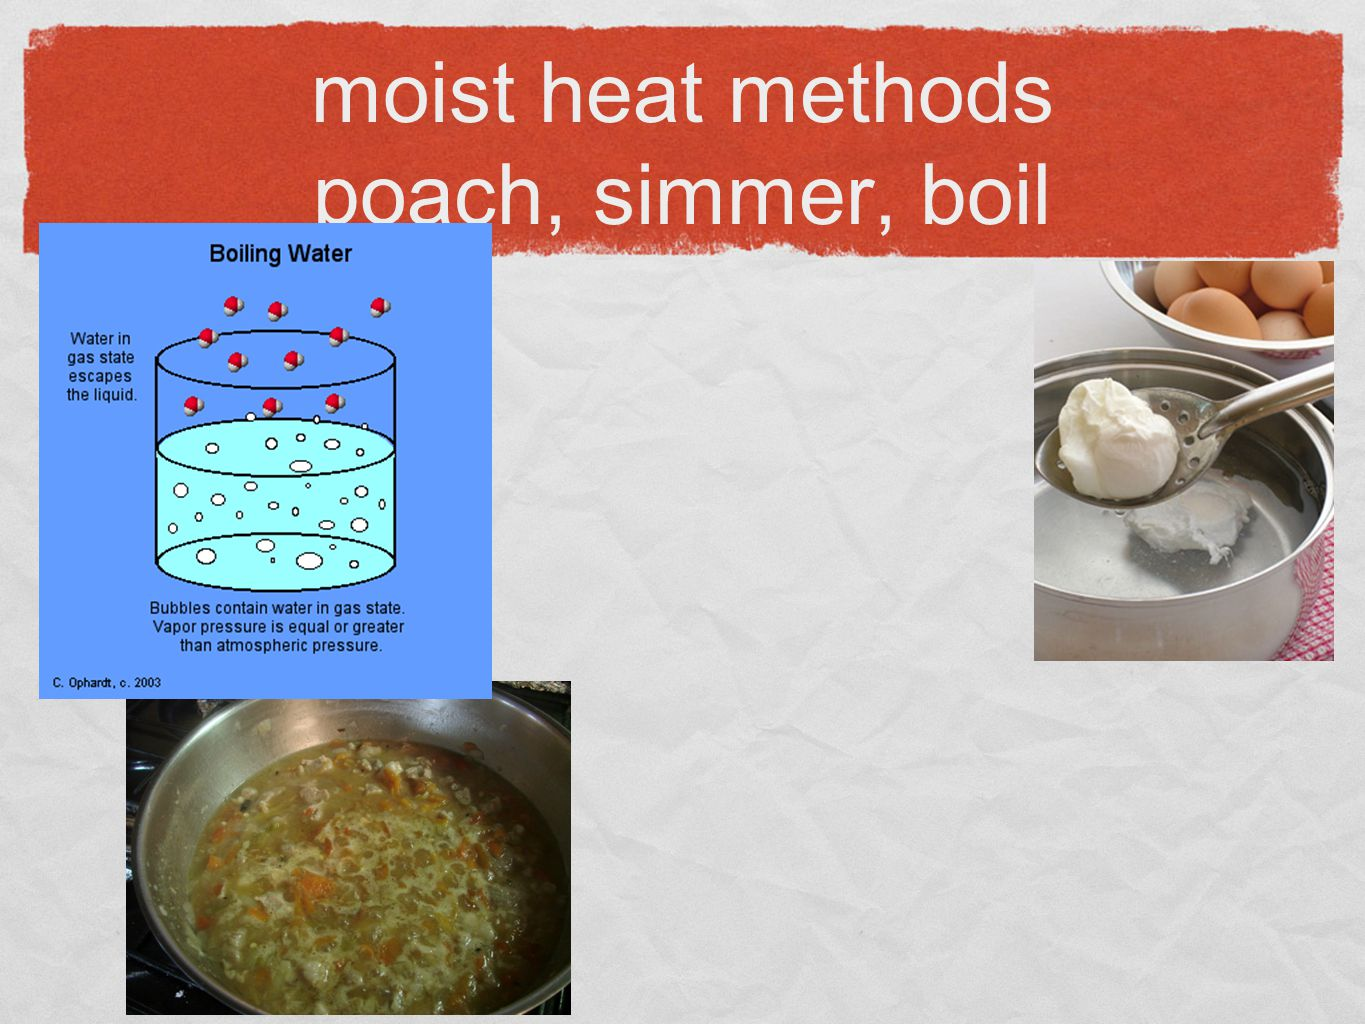 moist heat methods poach, simmer, boil